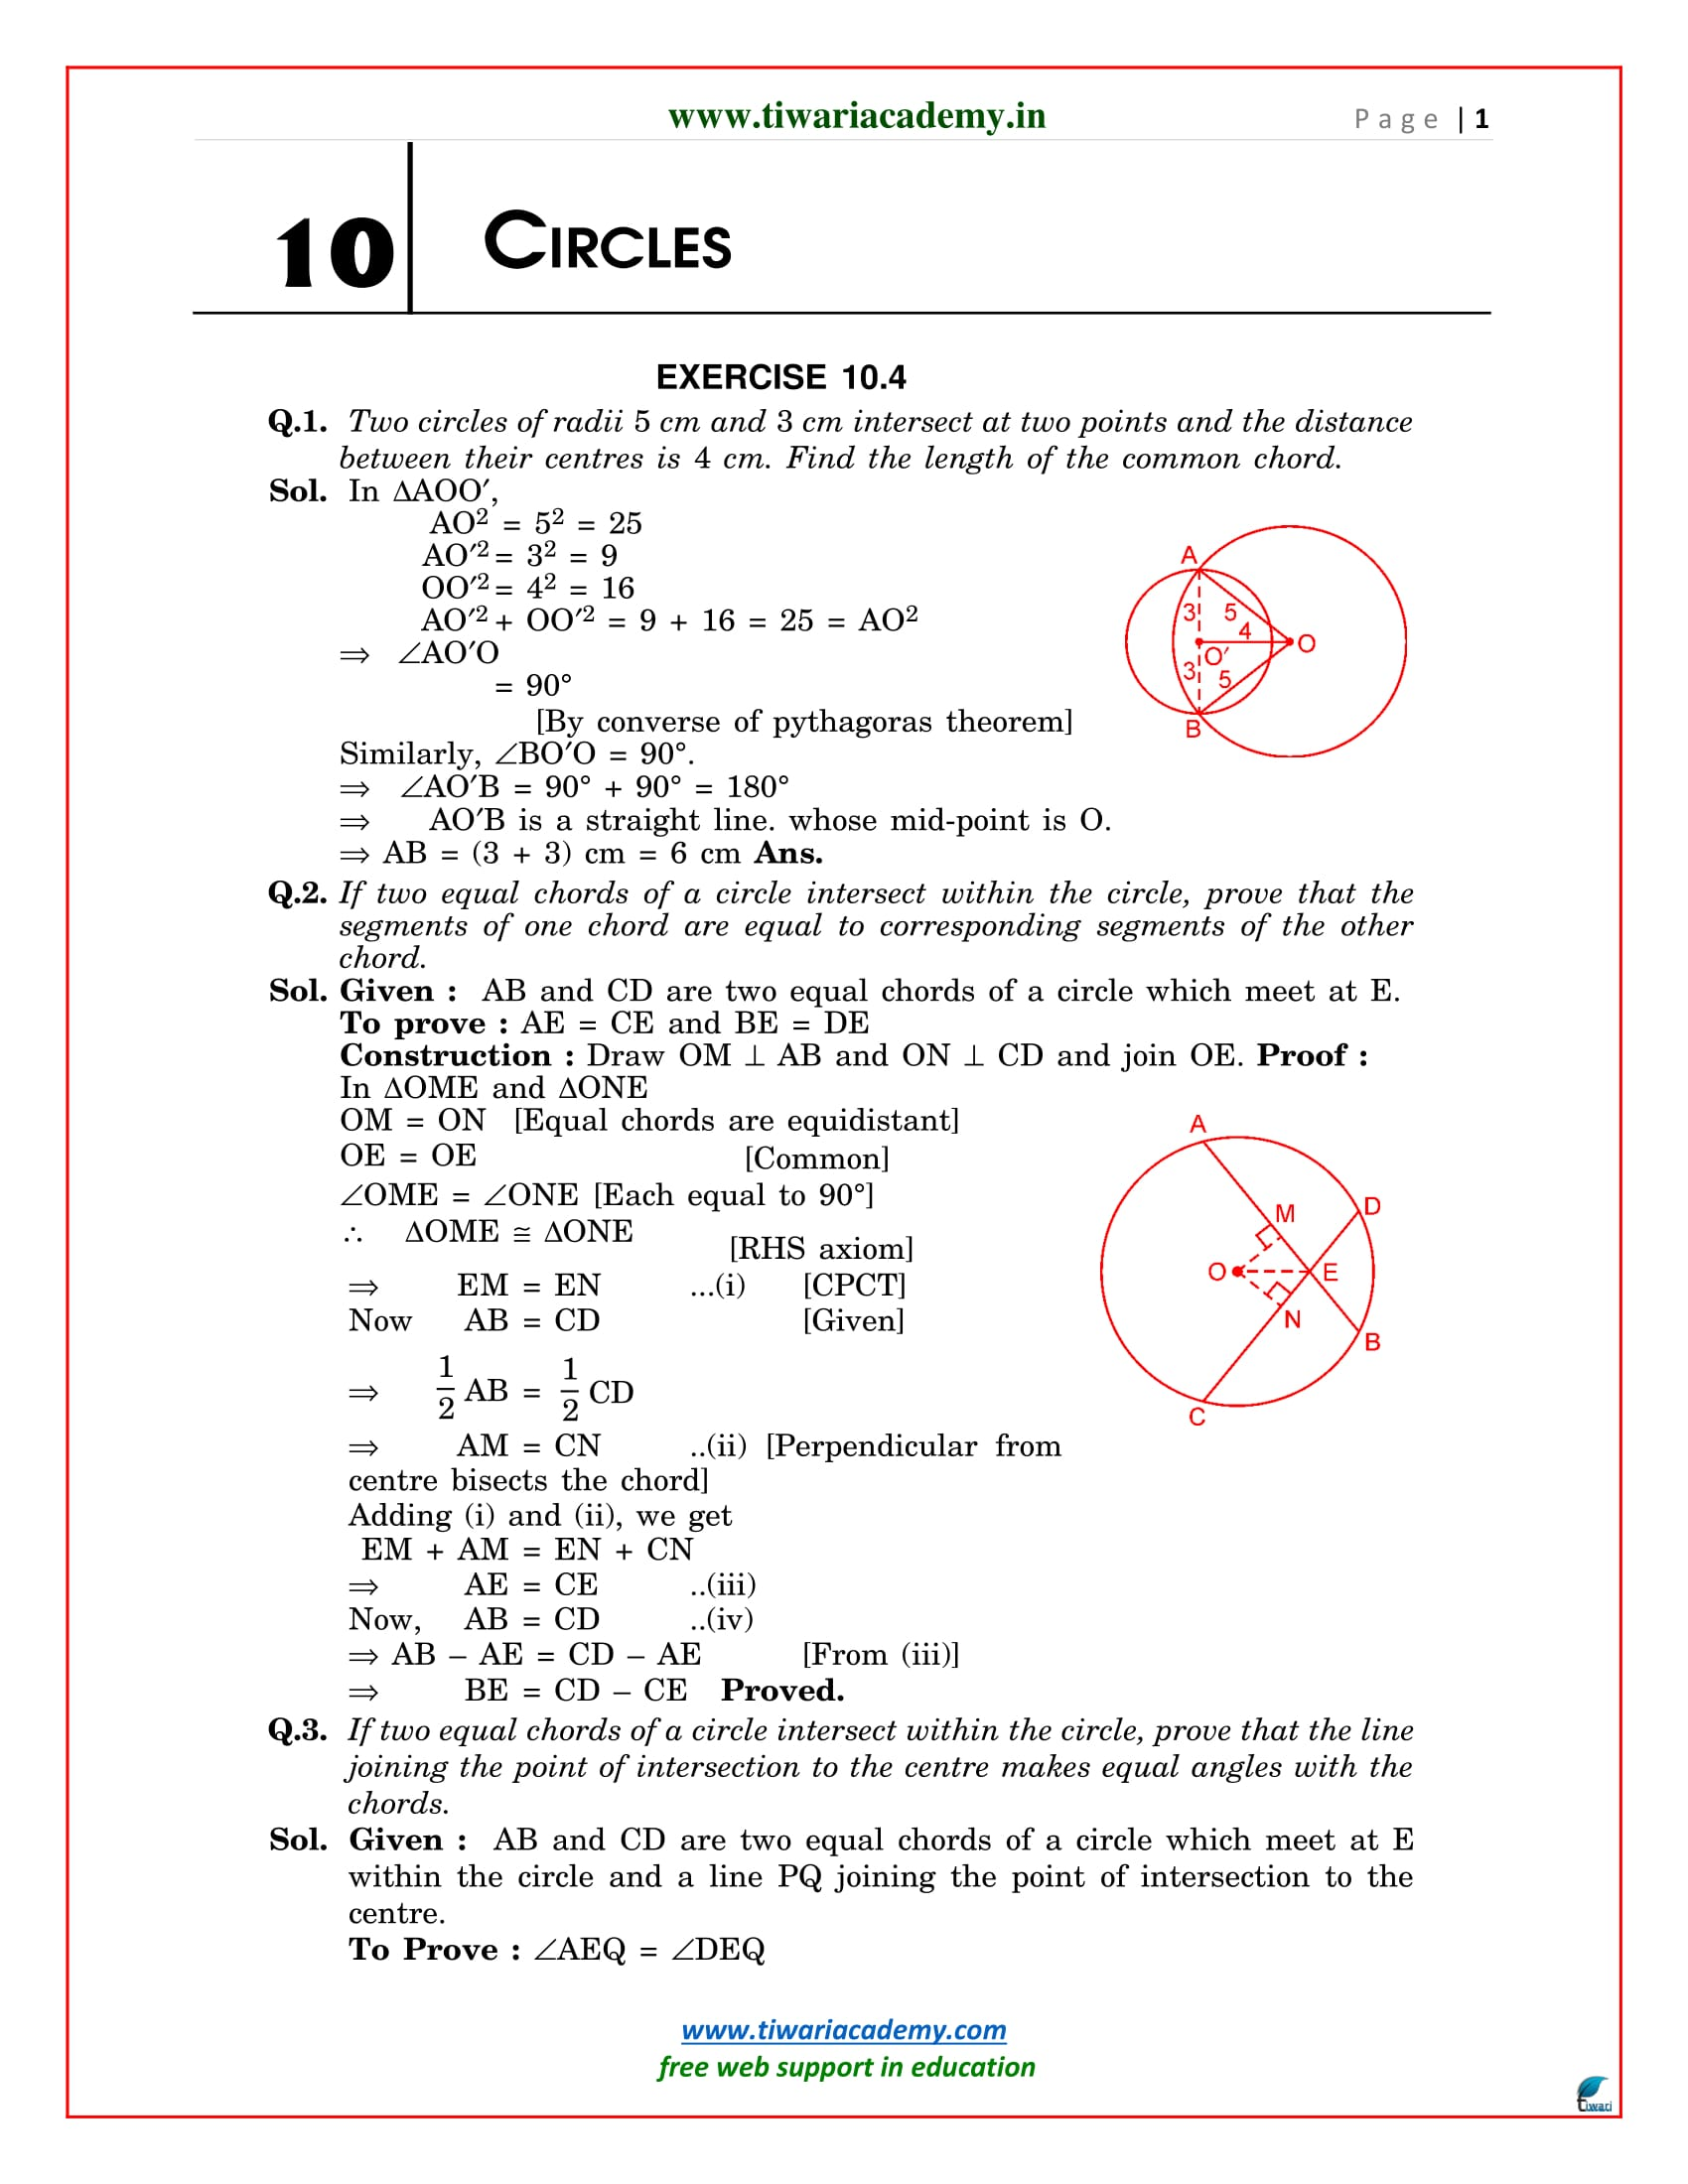 NCERT Solutions for Class 9 Maths Chapter 10 Exercise 10.4